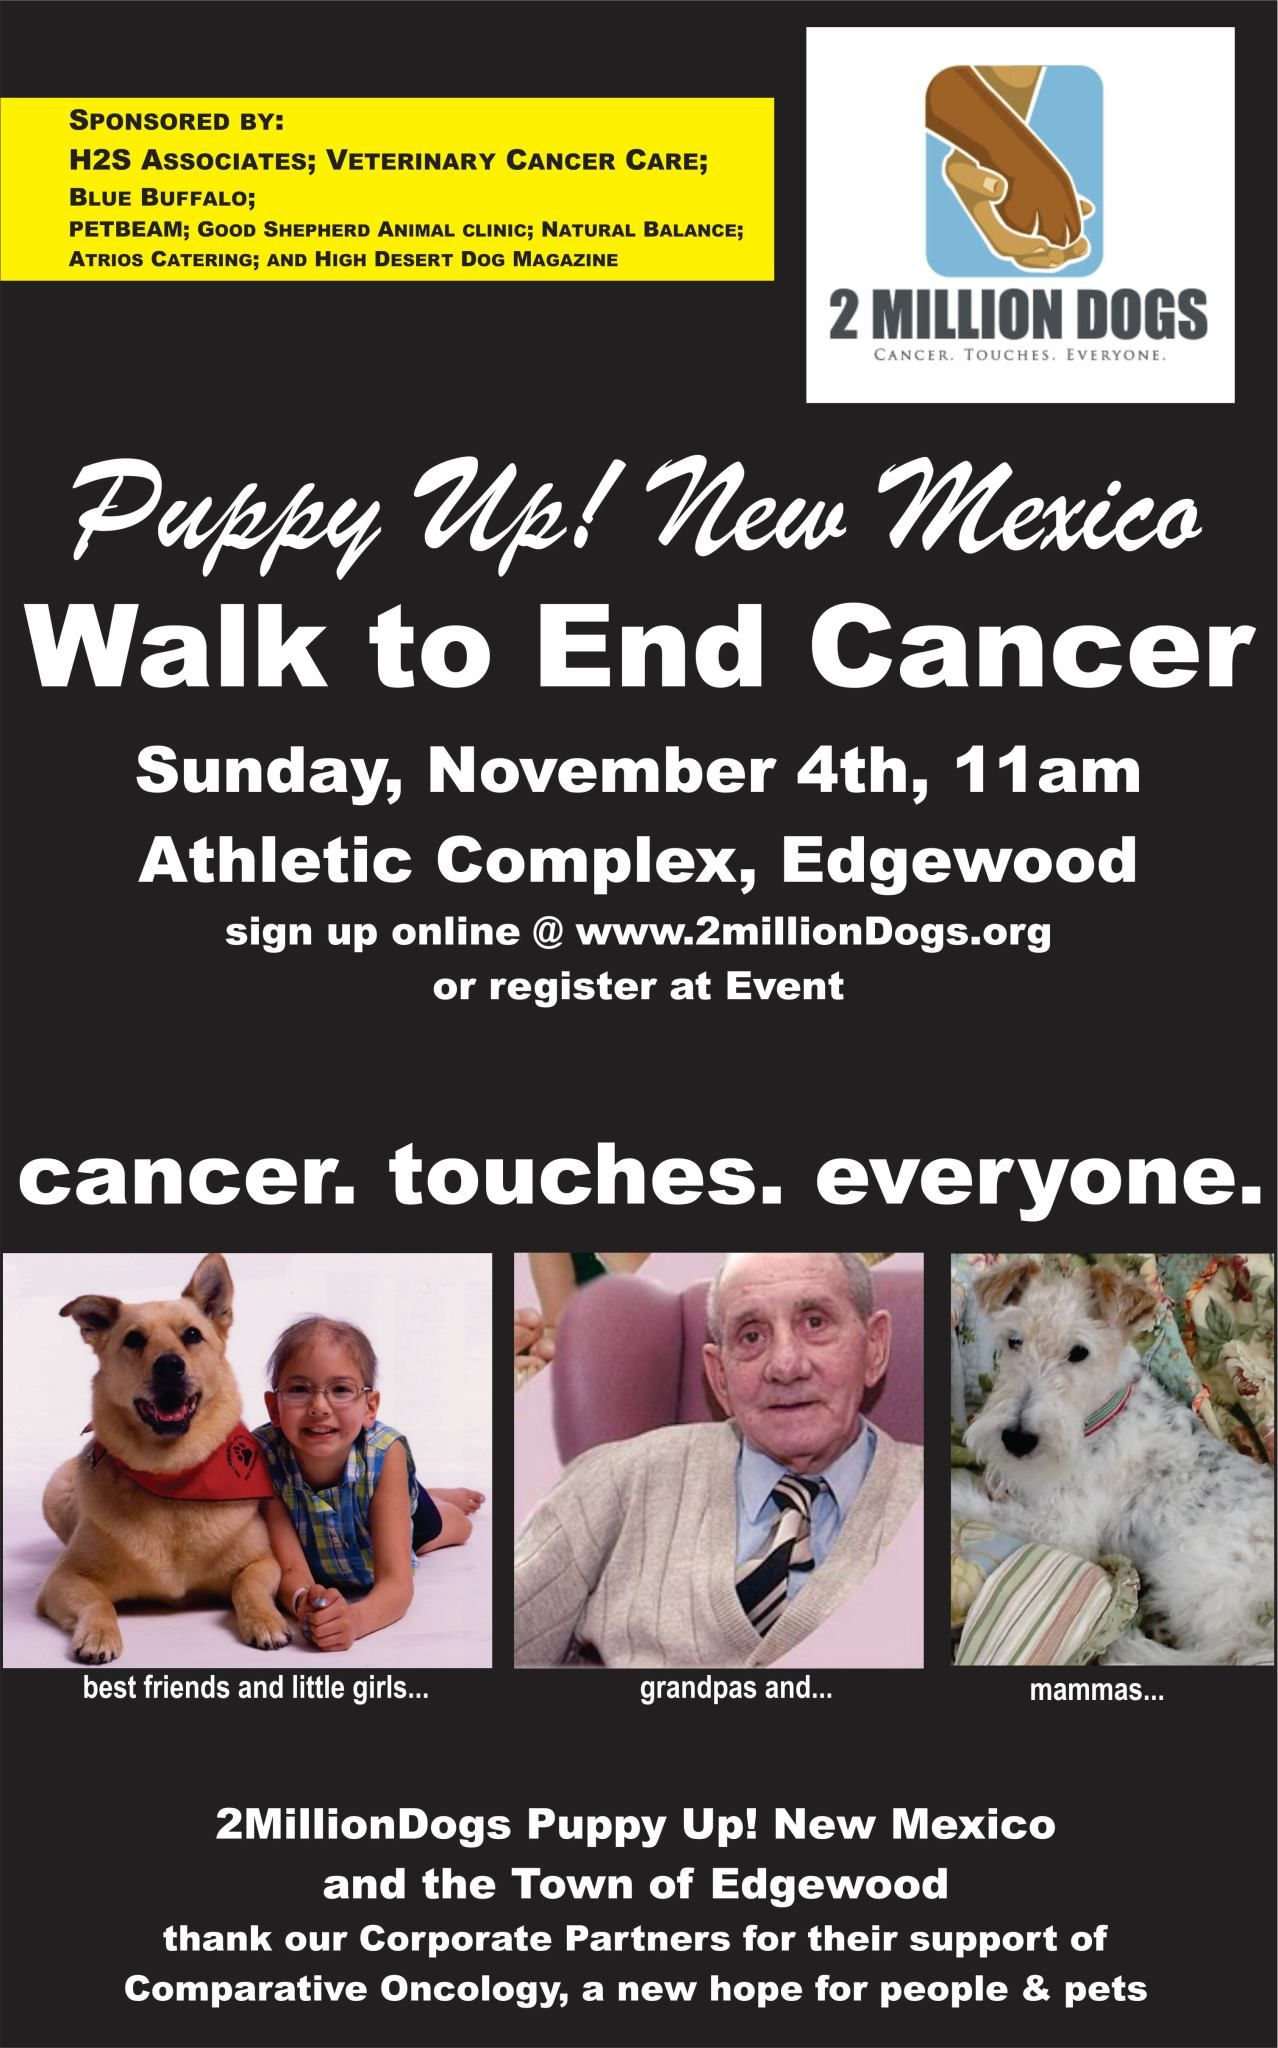 Please Share Join Us Tomorrow In Our Walk To End Cancer 2 Million Dogs Supports Research In Comparative Oncology Meaning Dog Cancer Pet Clinic Dog Magazine